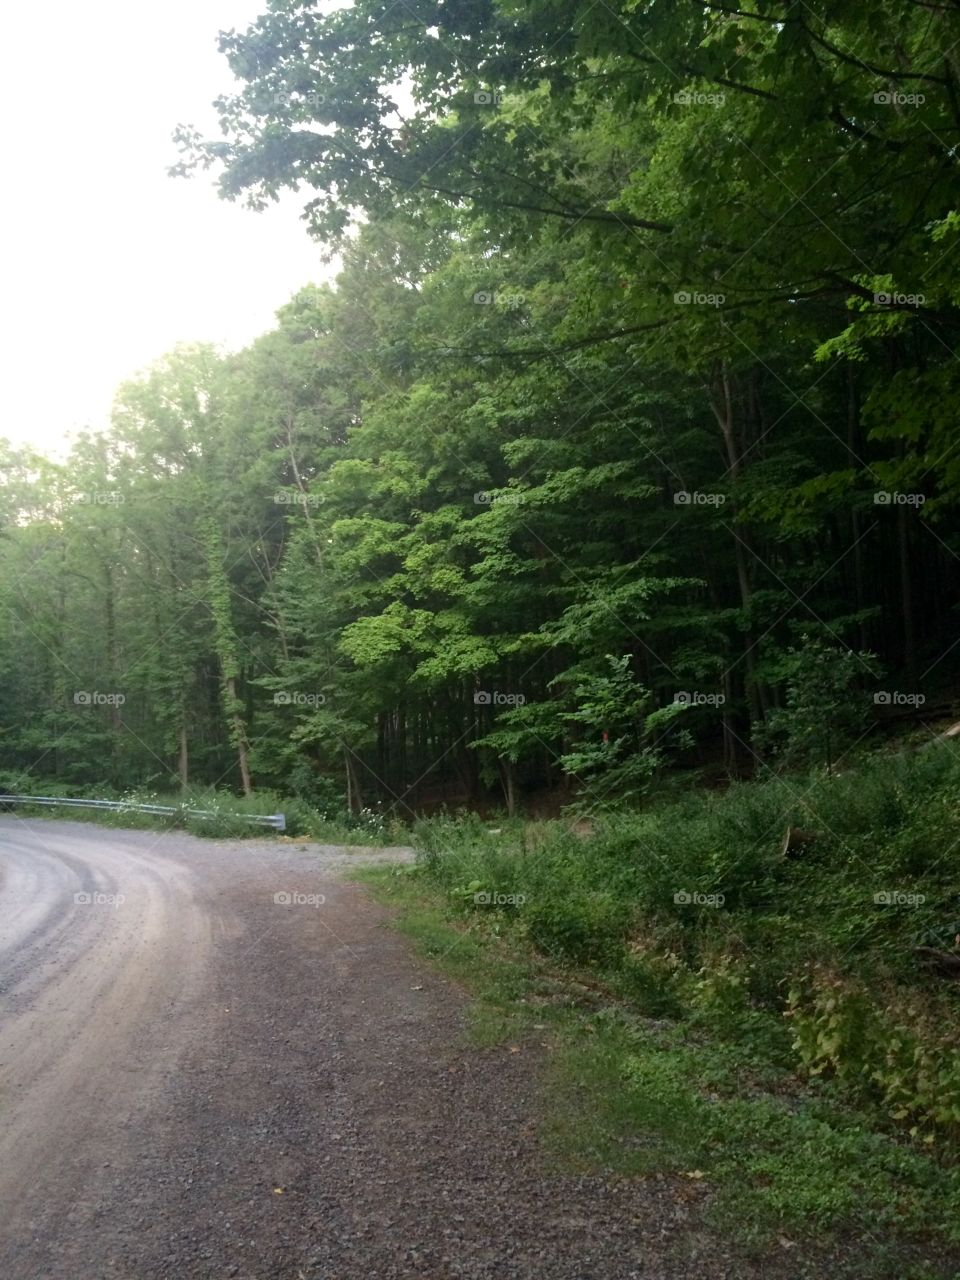 Road tripping through the forest